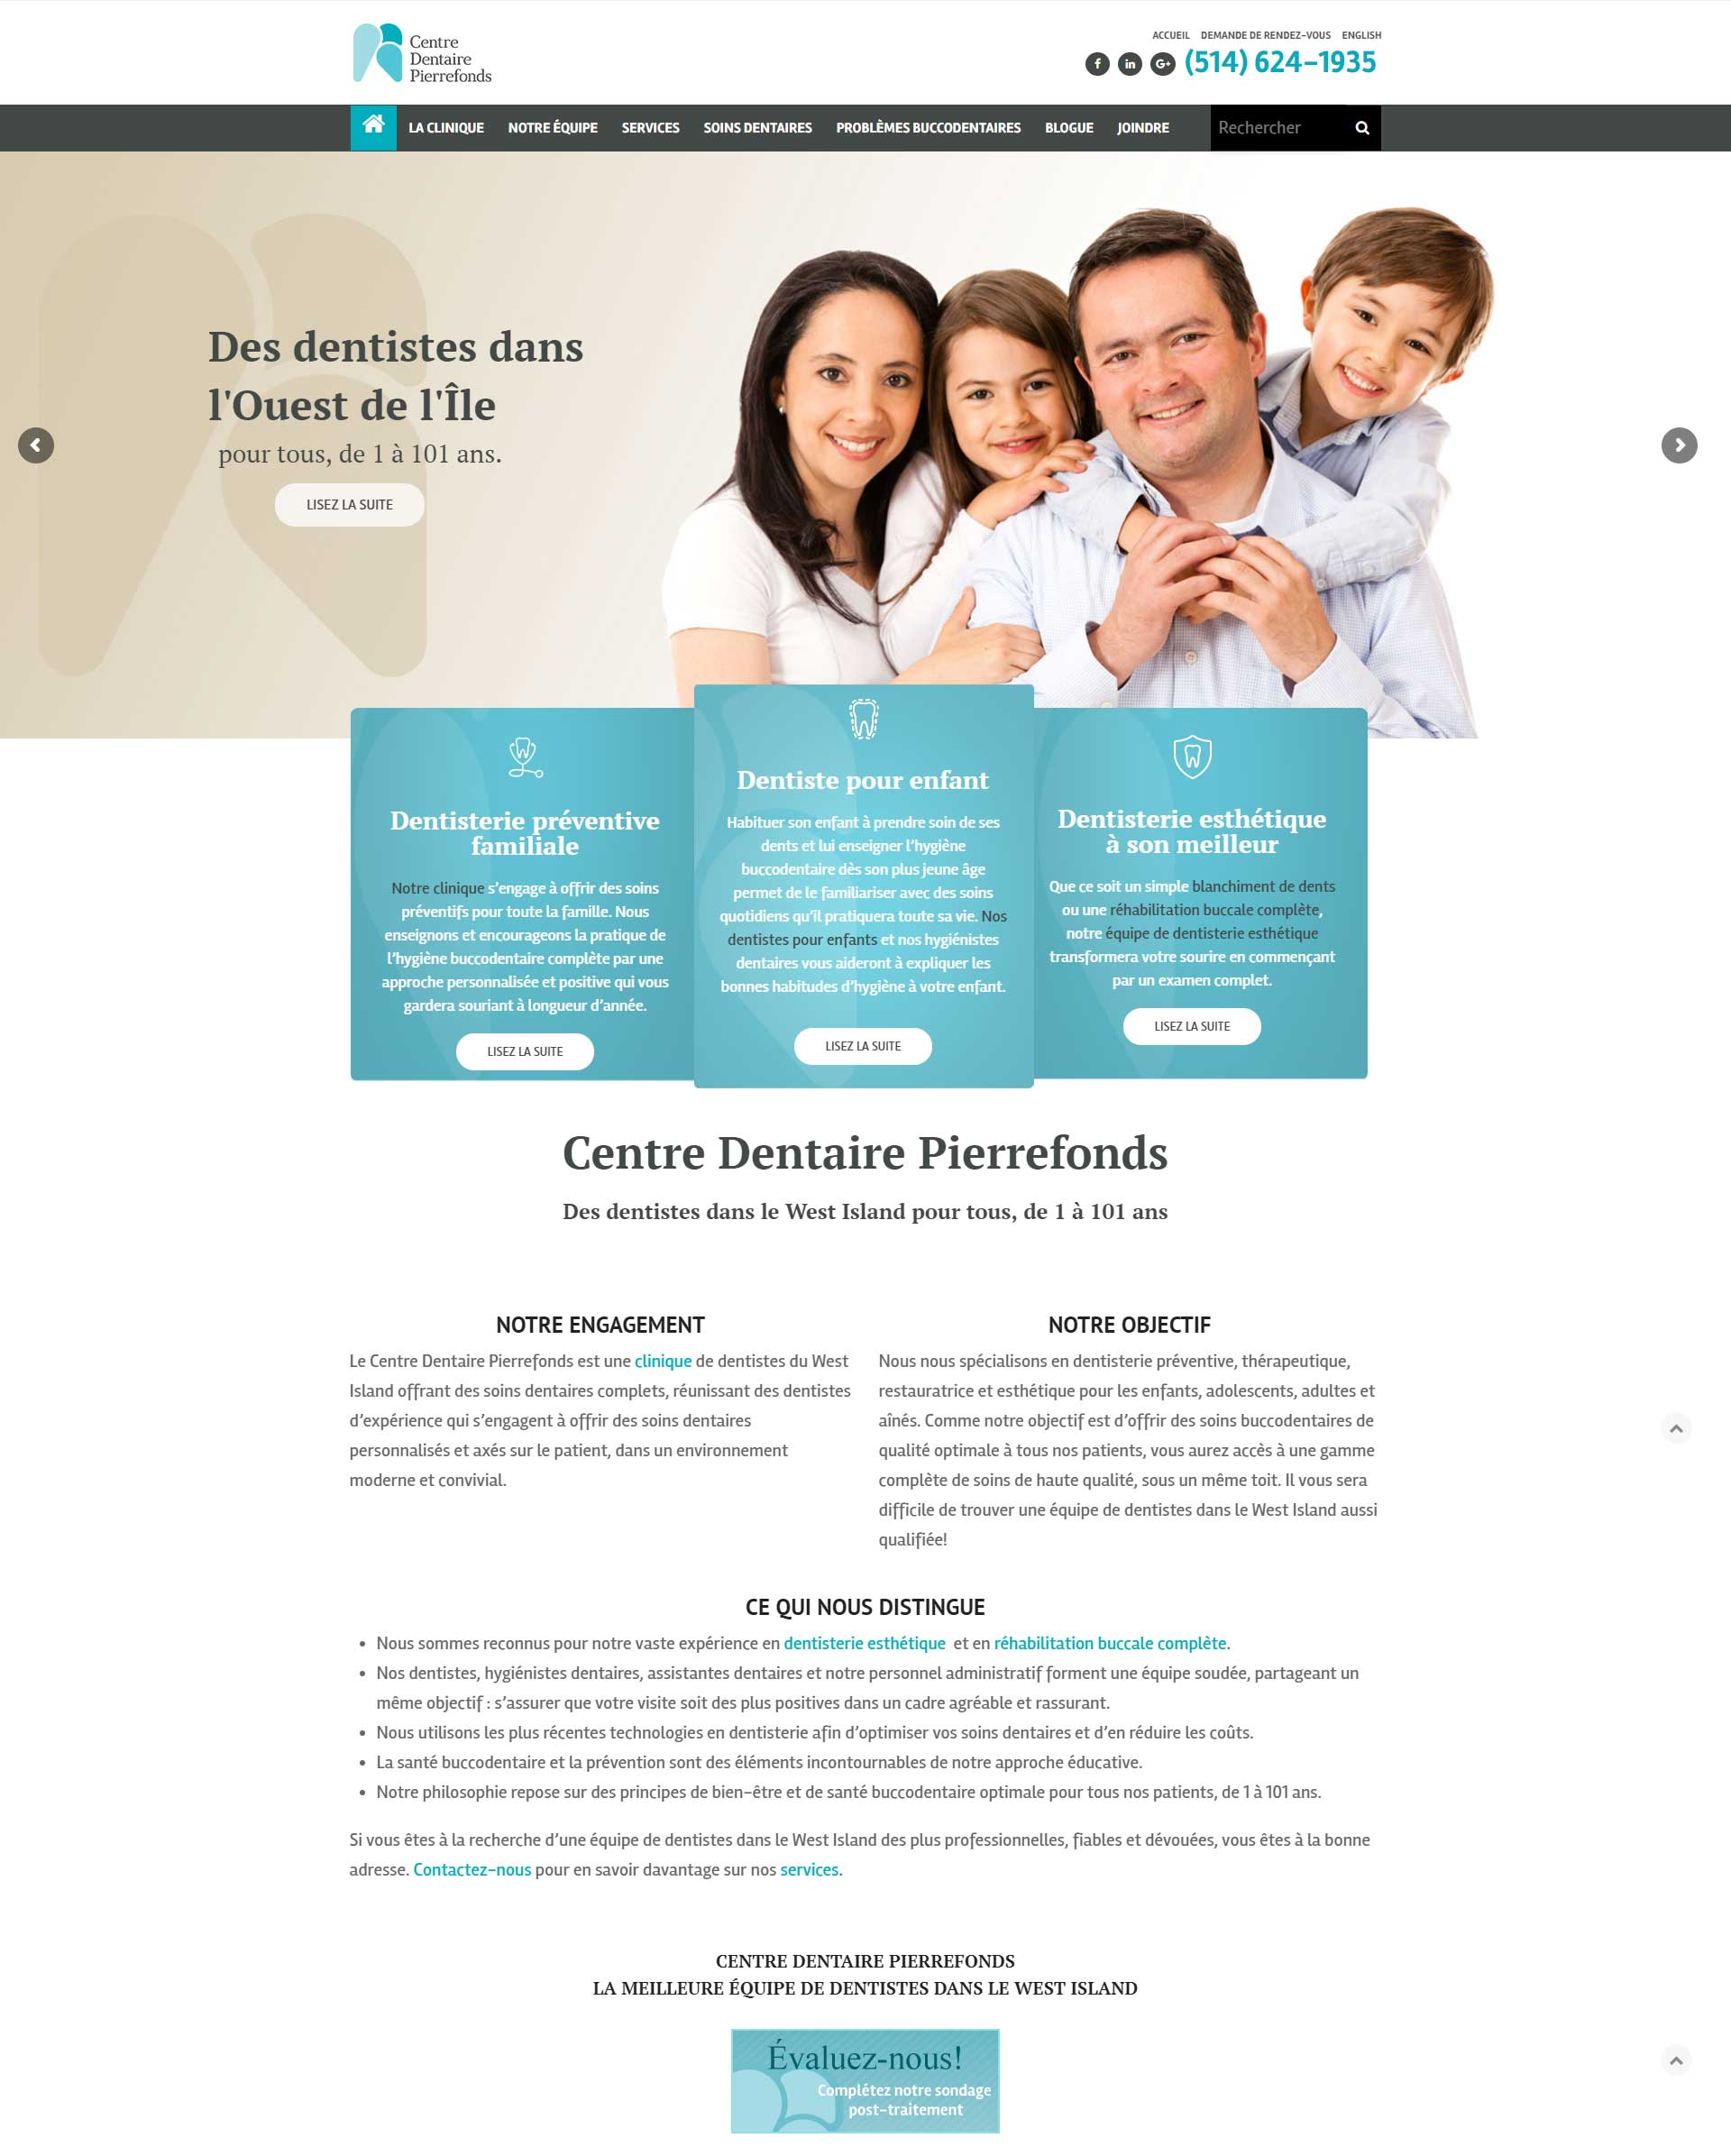 Pierrefonds Dental